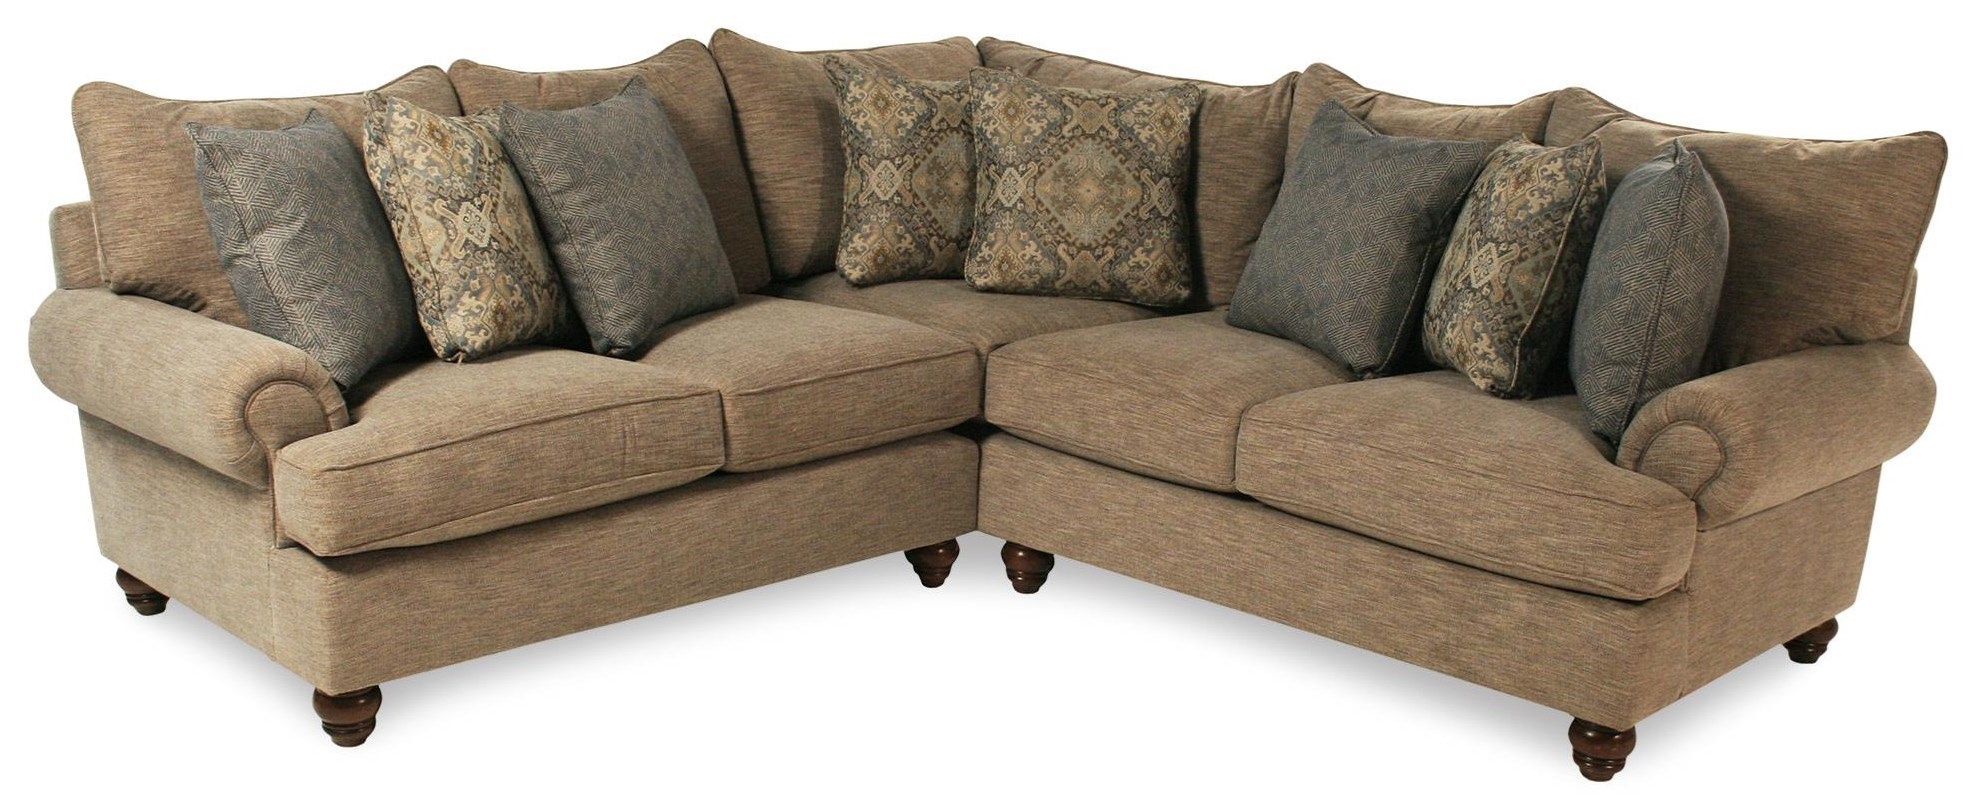 Samantha 2PC Sectional Sofa By Cozy Life At Rotmans